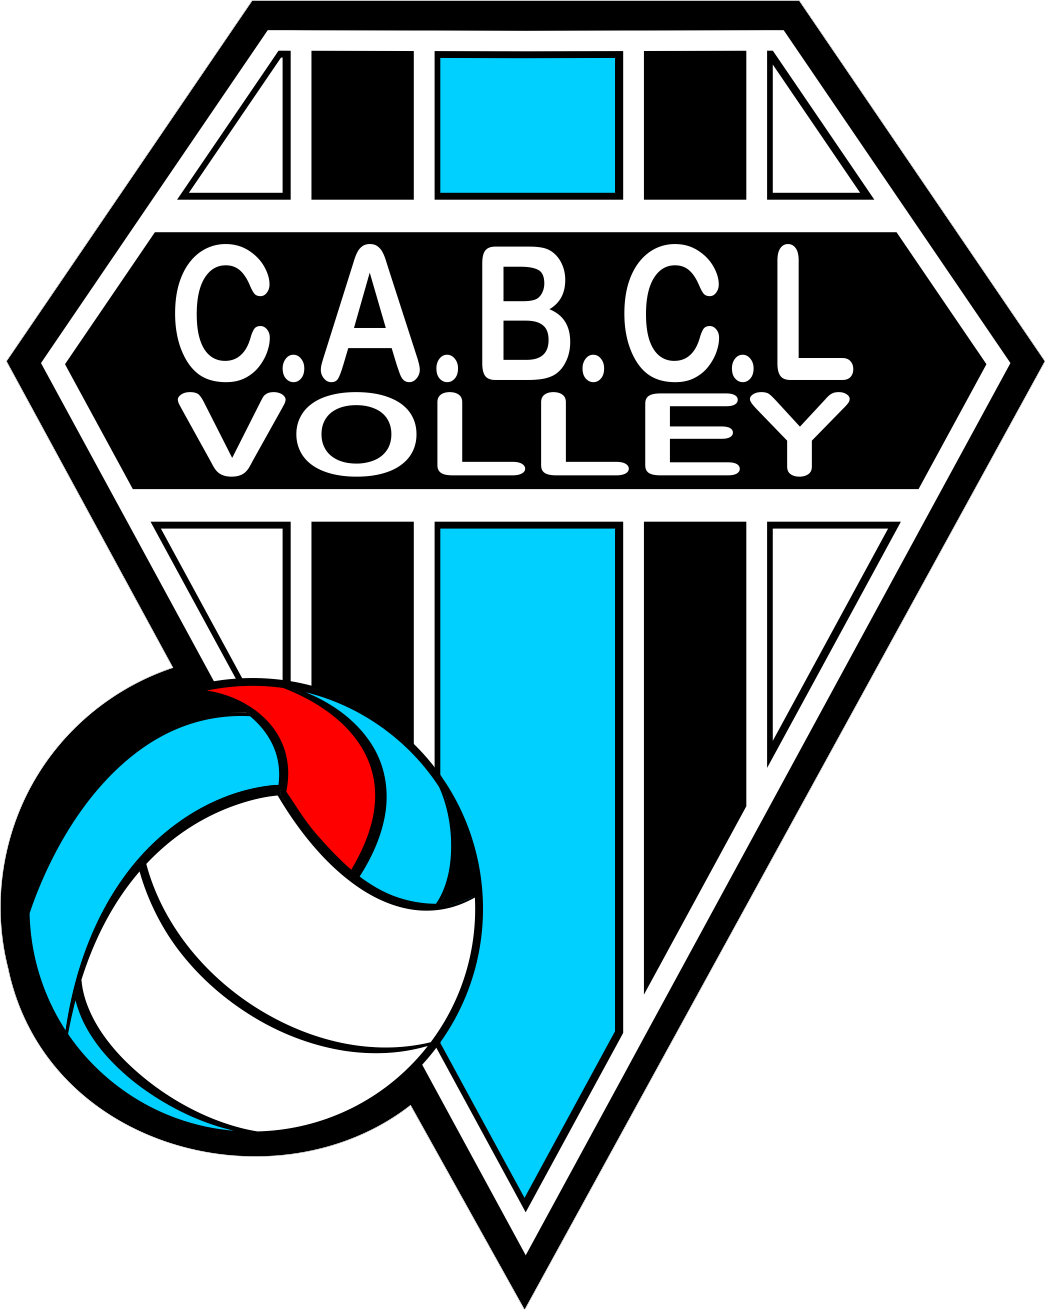 CABCL Volley